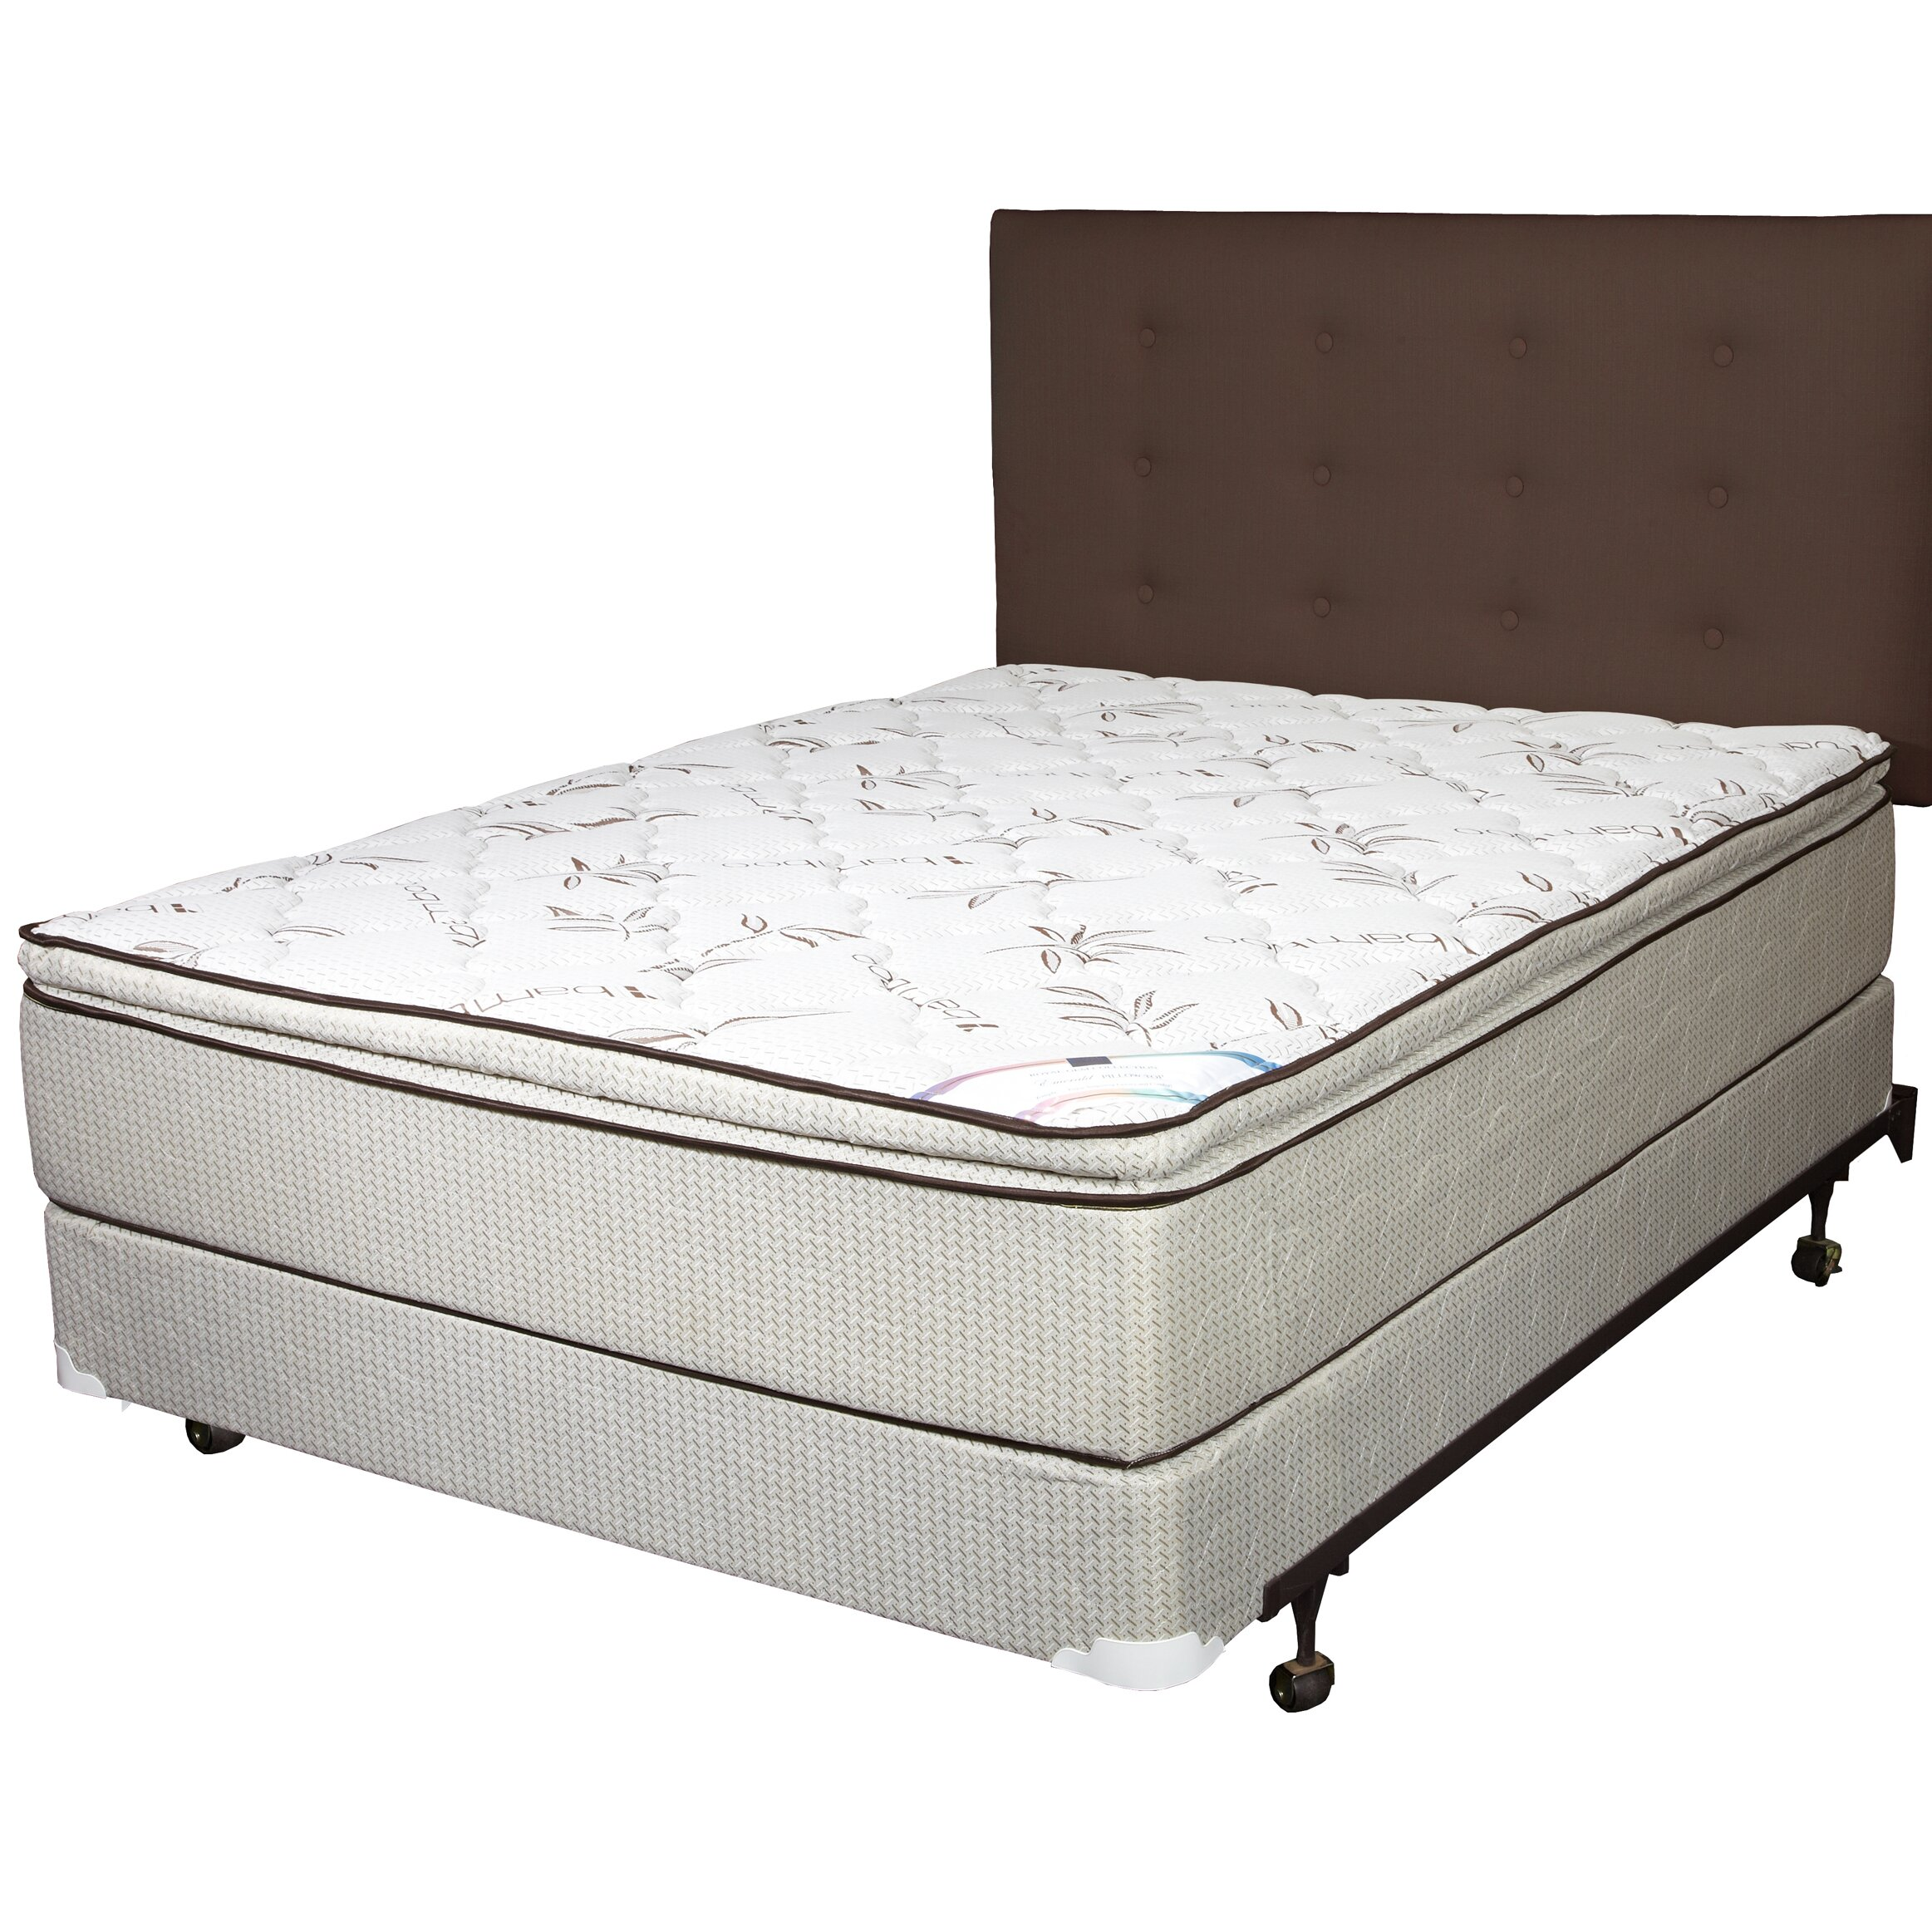 Mozaic company emerald 9 memory foam mattress wayfair for Which mattress company is the best